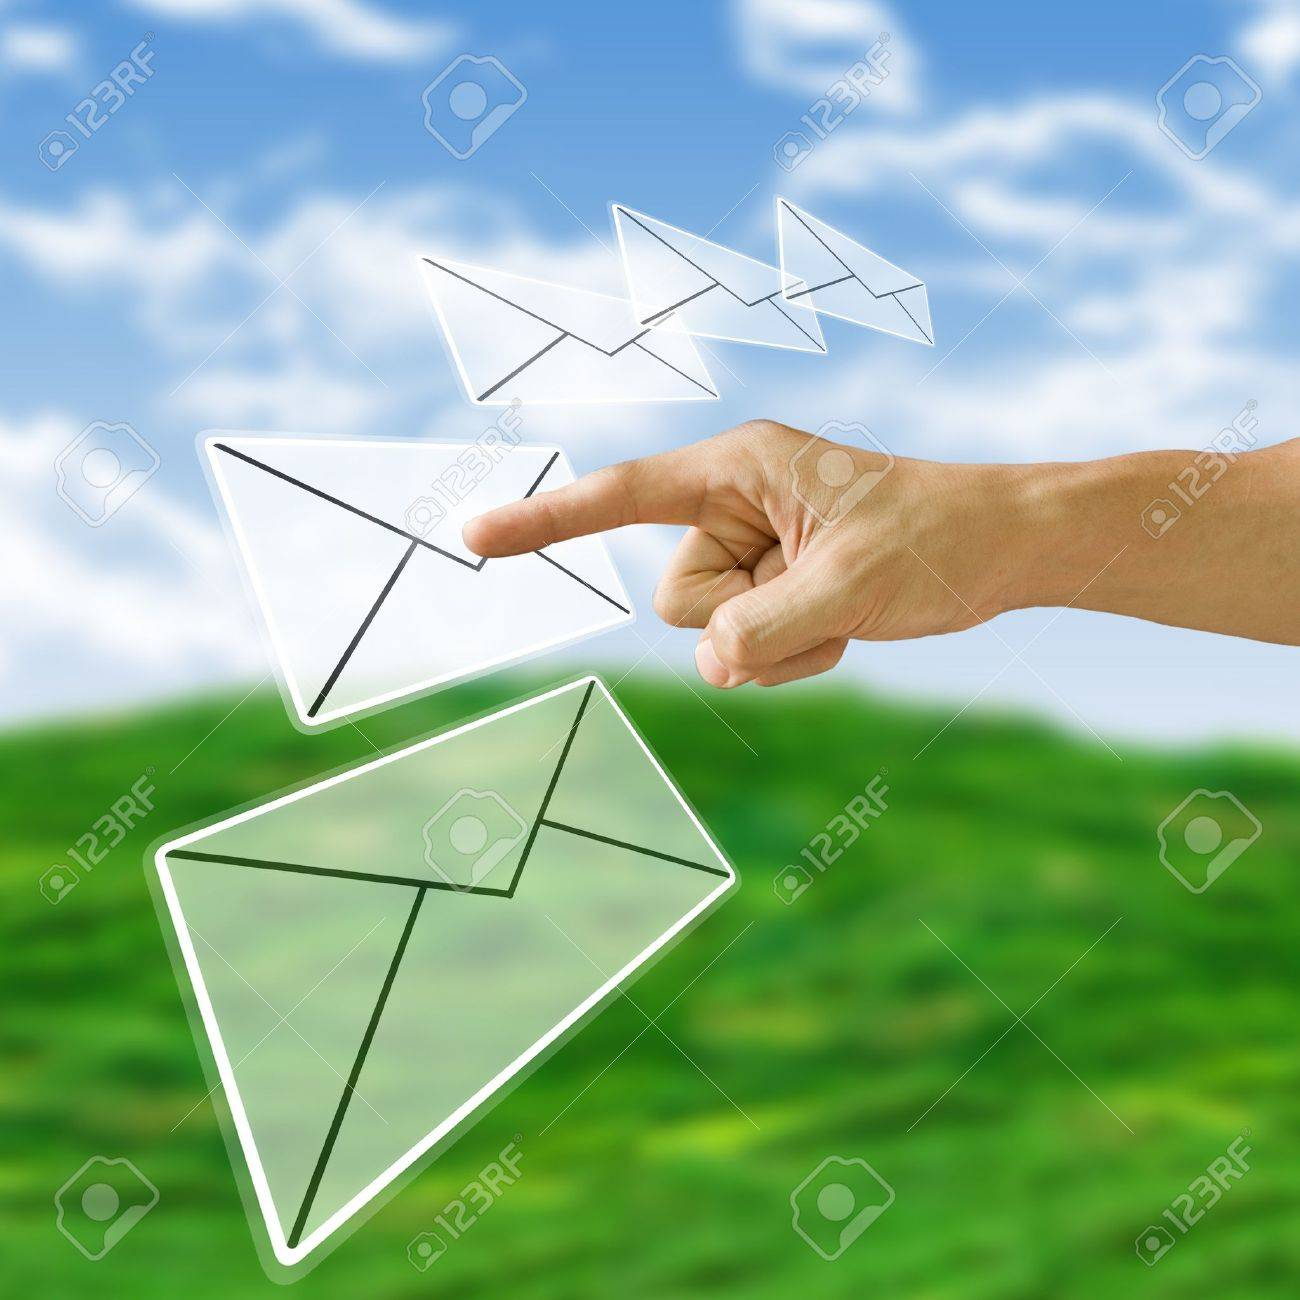 Finger pushing the letter with nature background, Email concept Stock Photo - 9728900